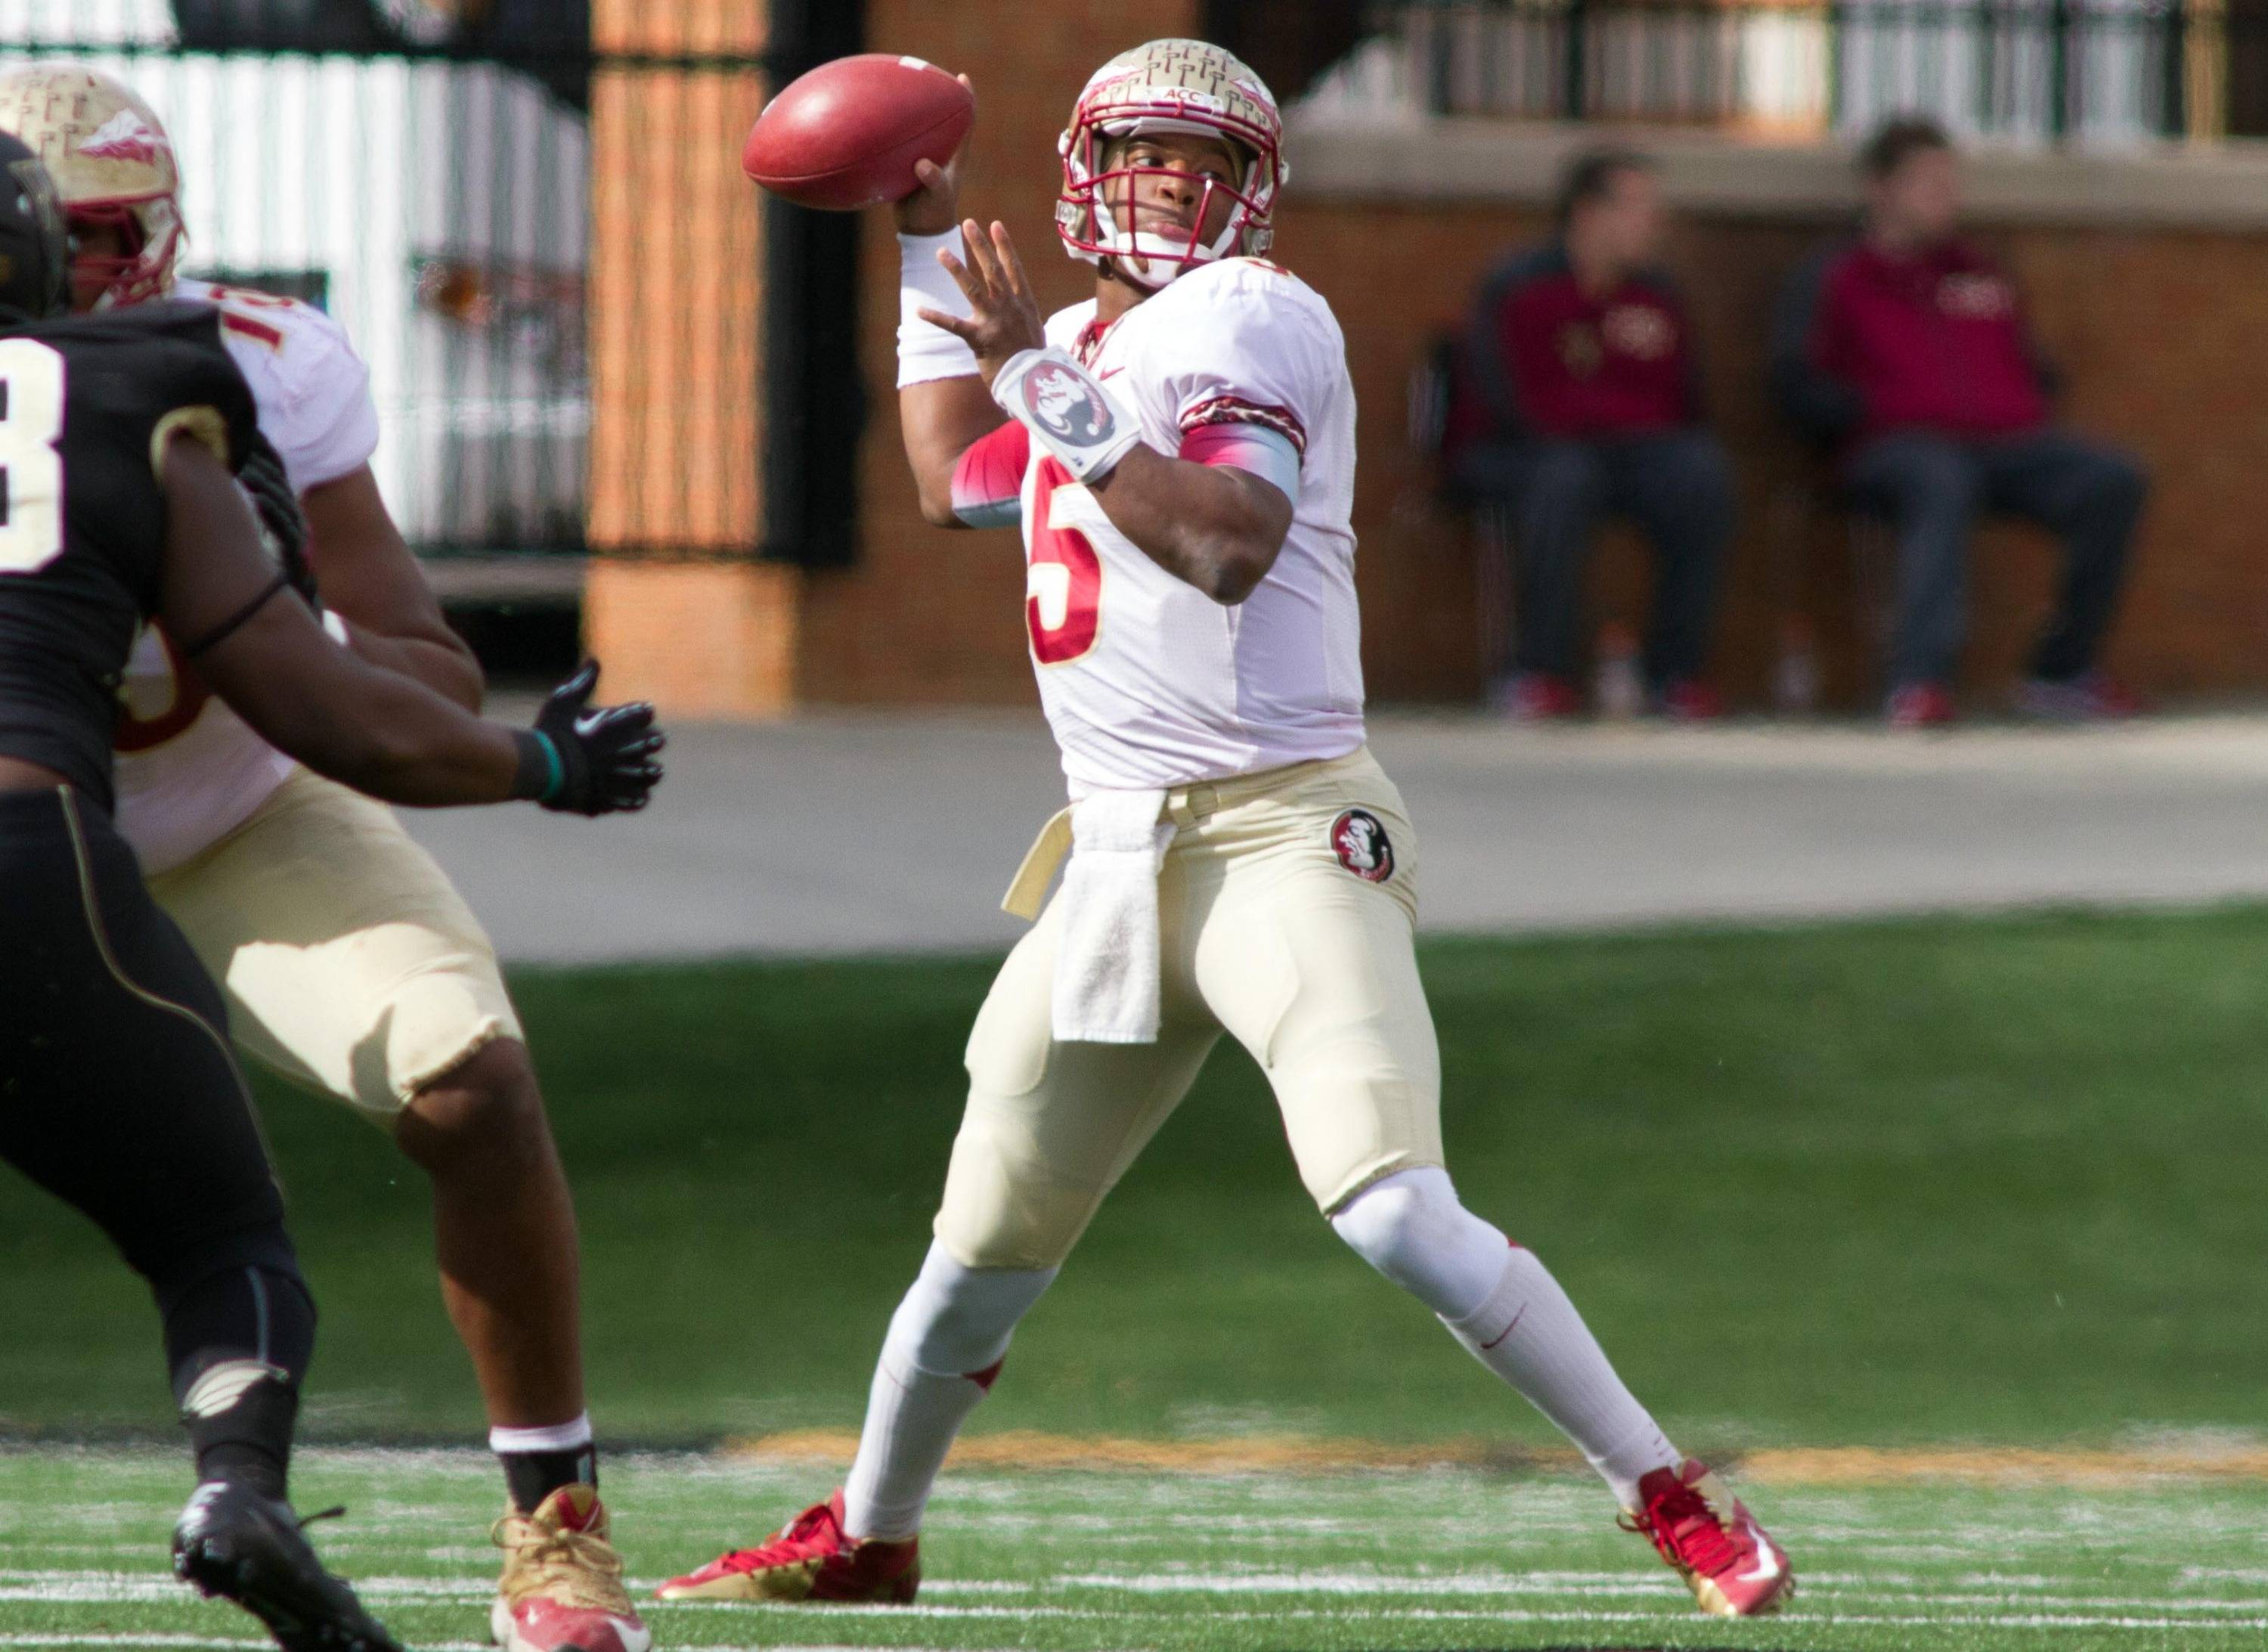 Jameis Winston (5) passes the ball during the second quarter. Mandatory Credit: Jeremy Brevard-USA TODAY Sports